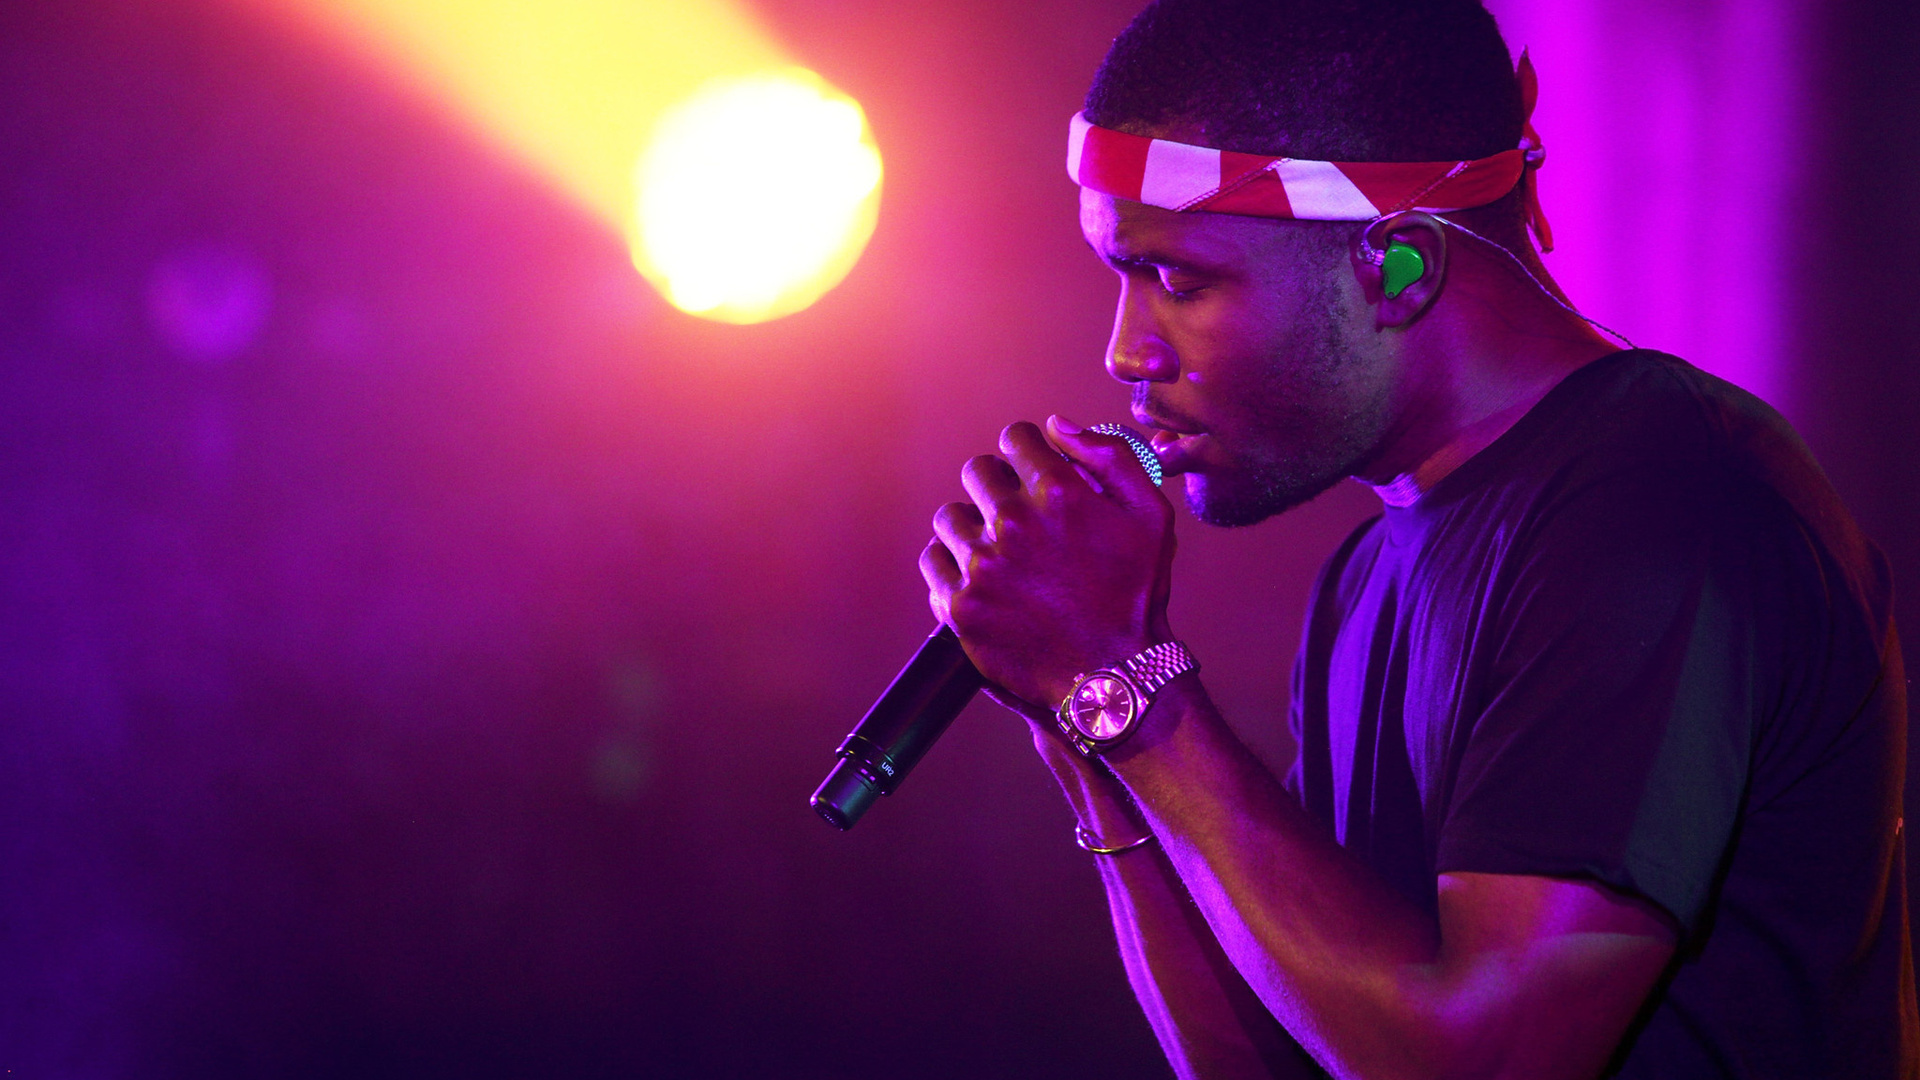 Frank Ocean Wallpapers Images Photos Pictures Backgrounds 1920x1080